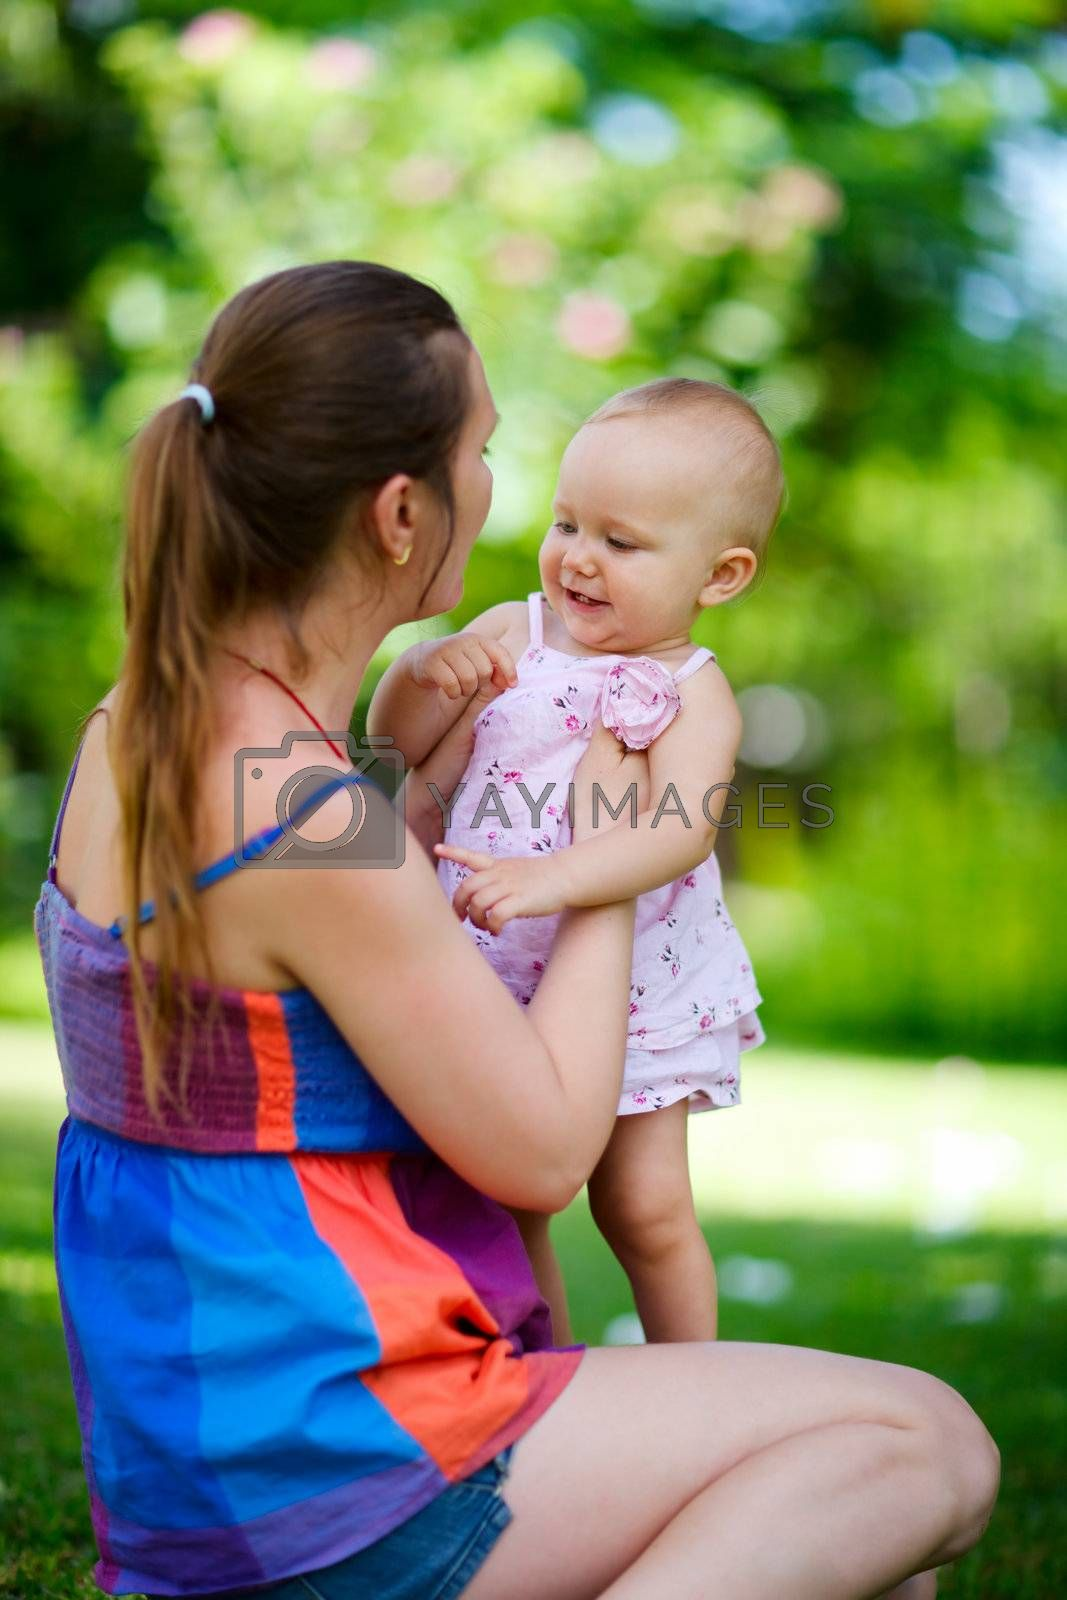 Lifestyle portrait of young mother and baby daughter outdoors